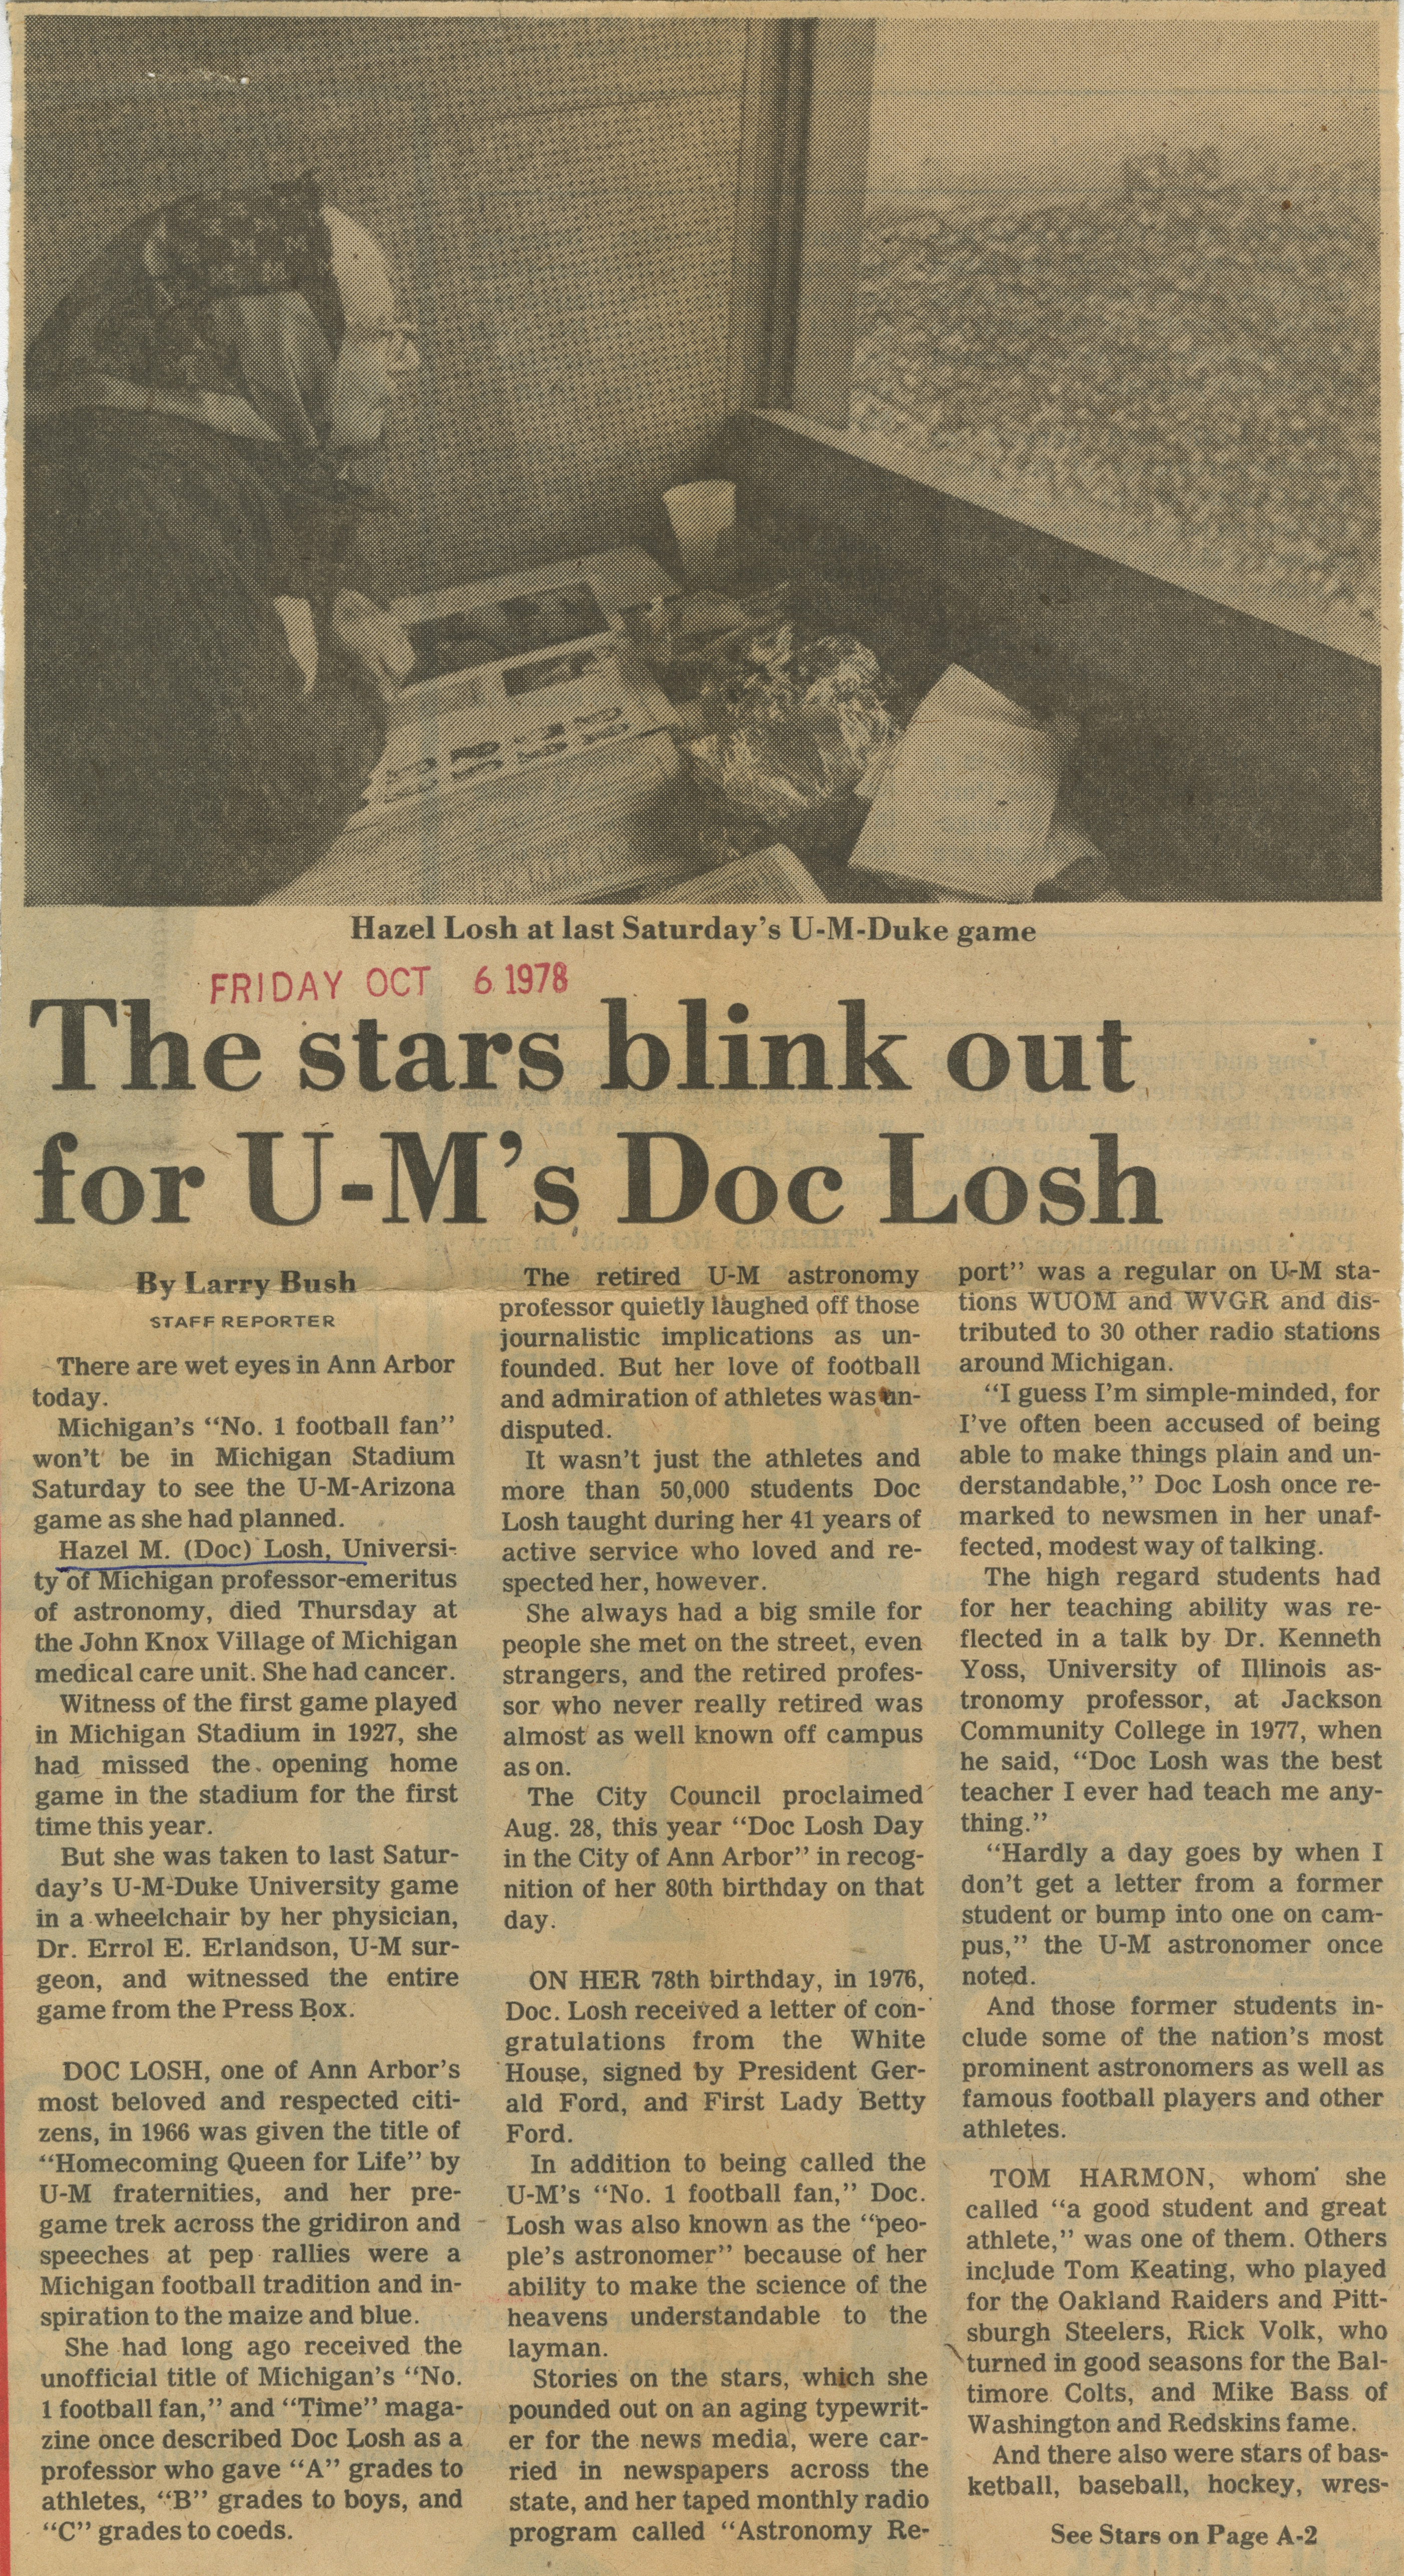 The stars blink out for U-M's Doc Losh image